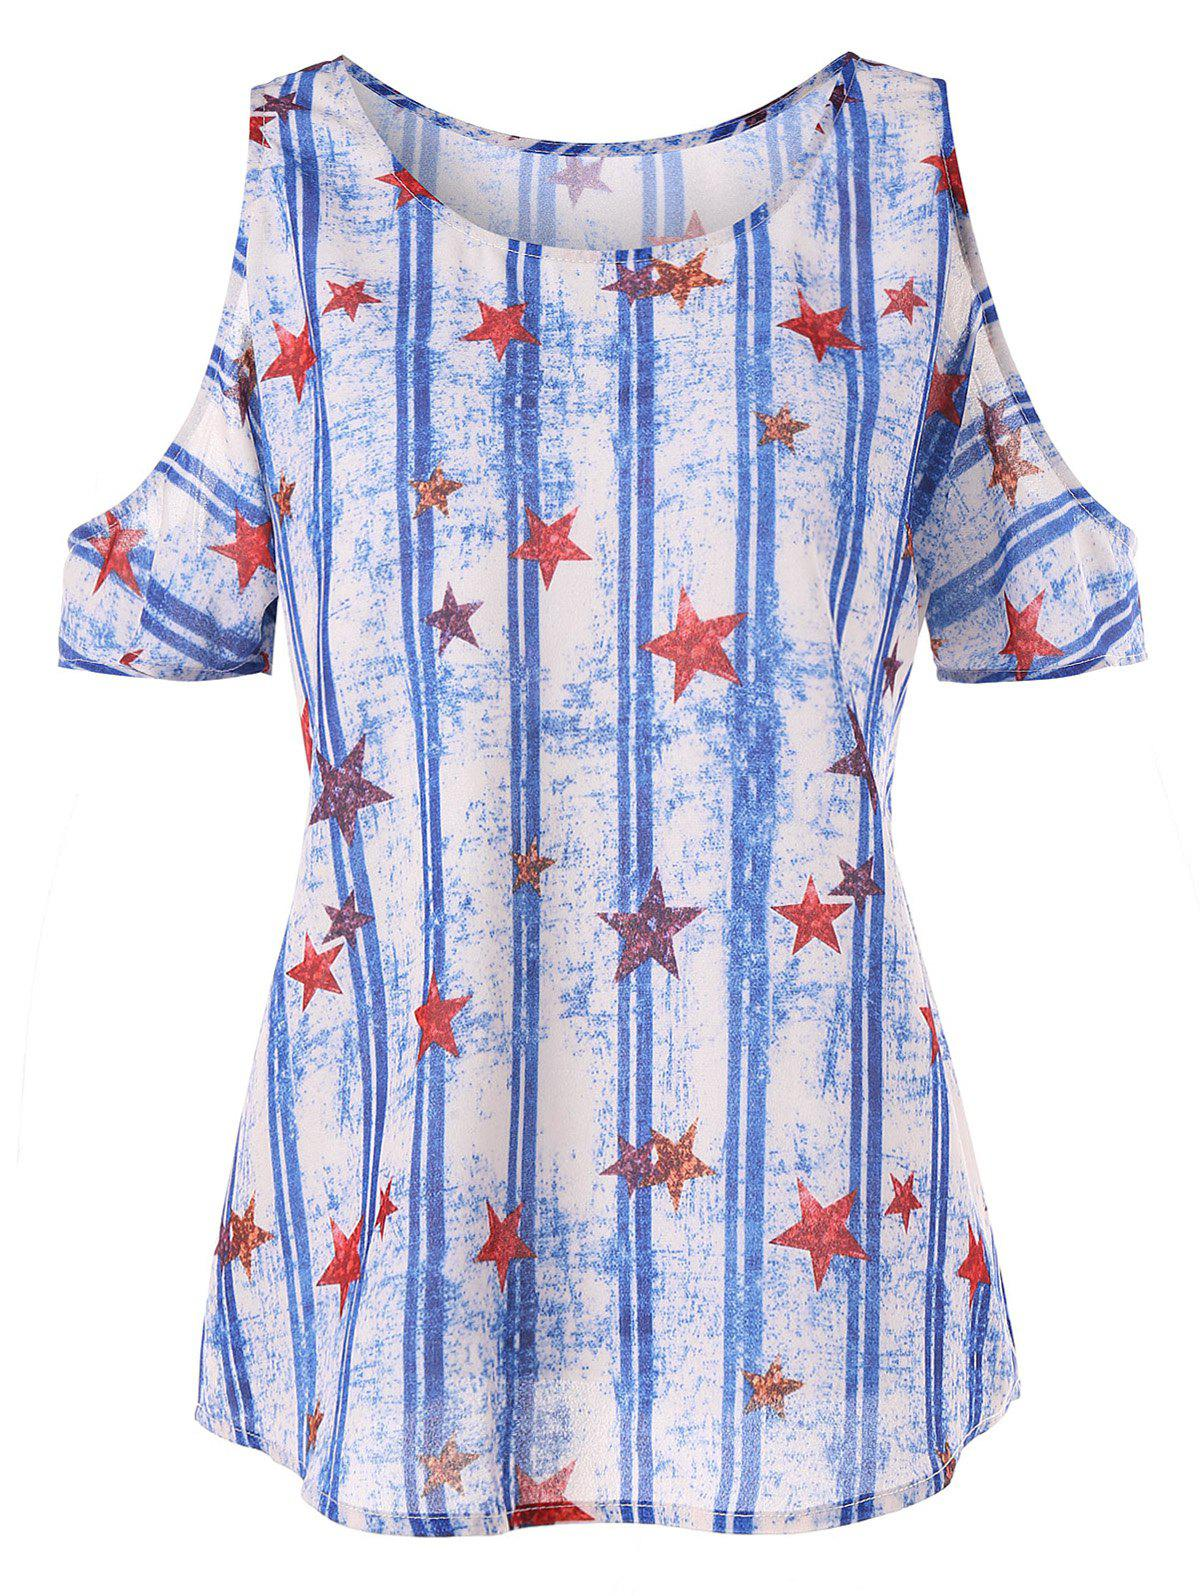 Discount Stars and Stripes Print Shoulder Cut T-shirt